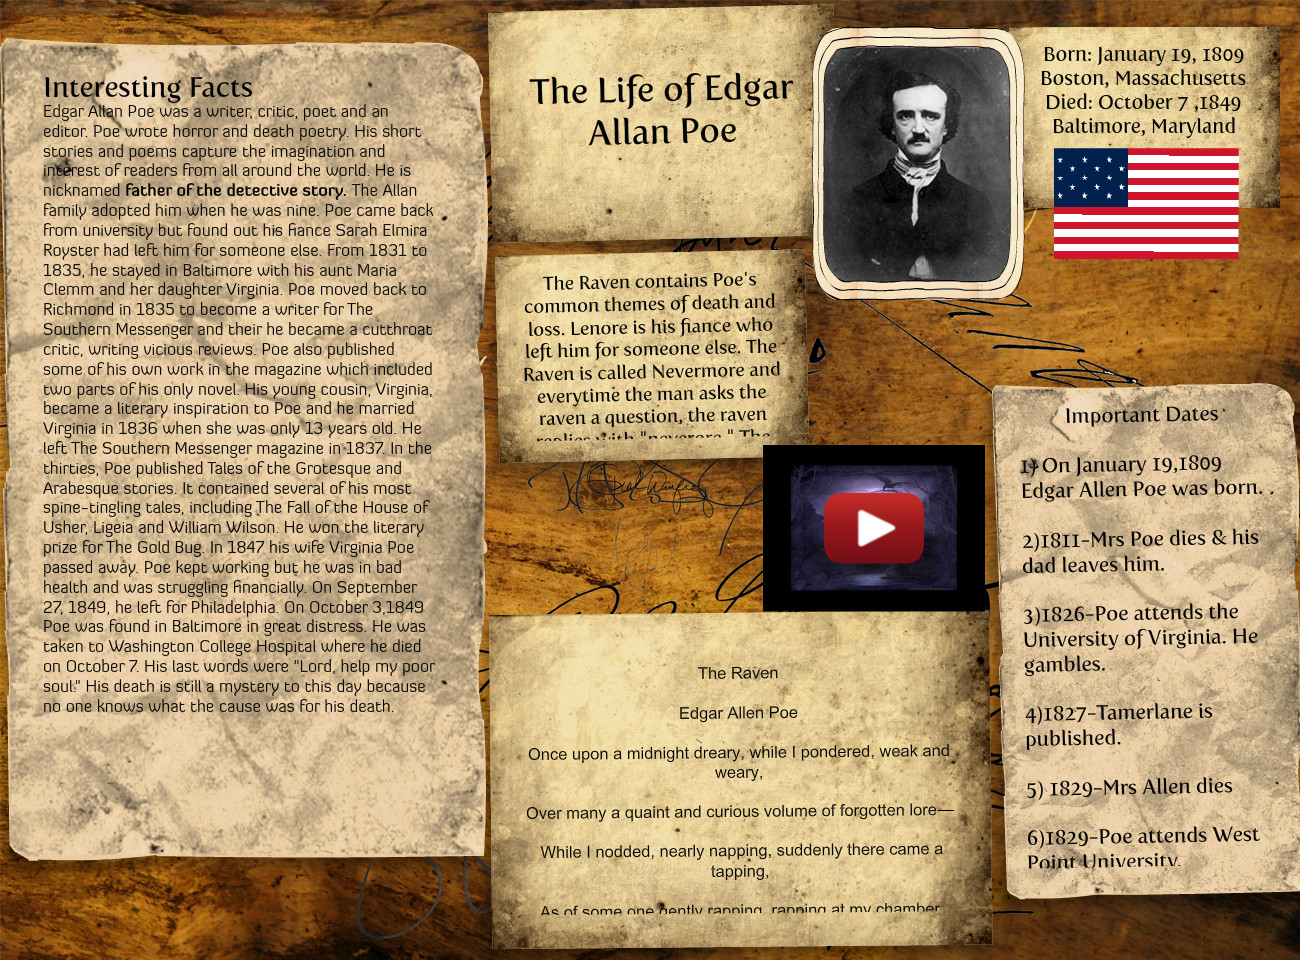 The Life of Edgar Allan Poe